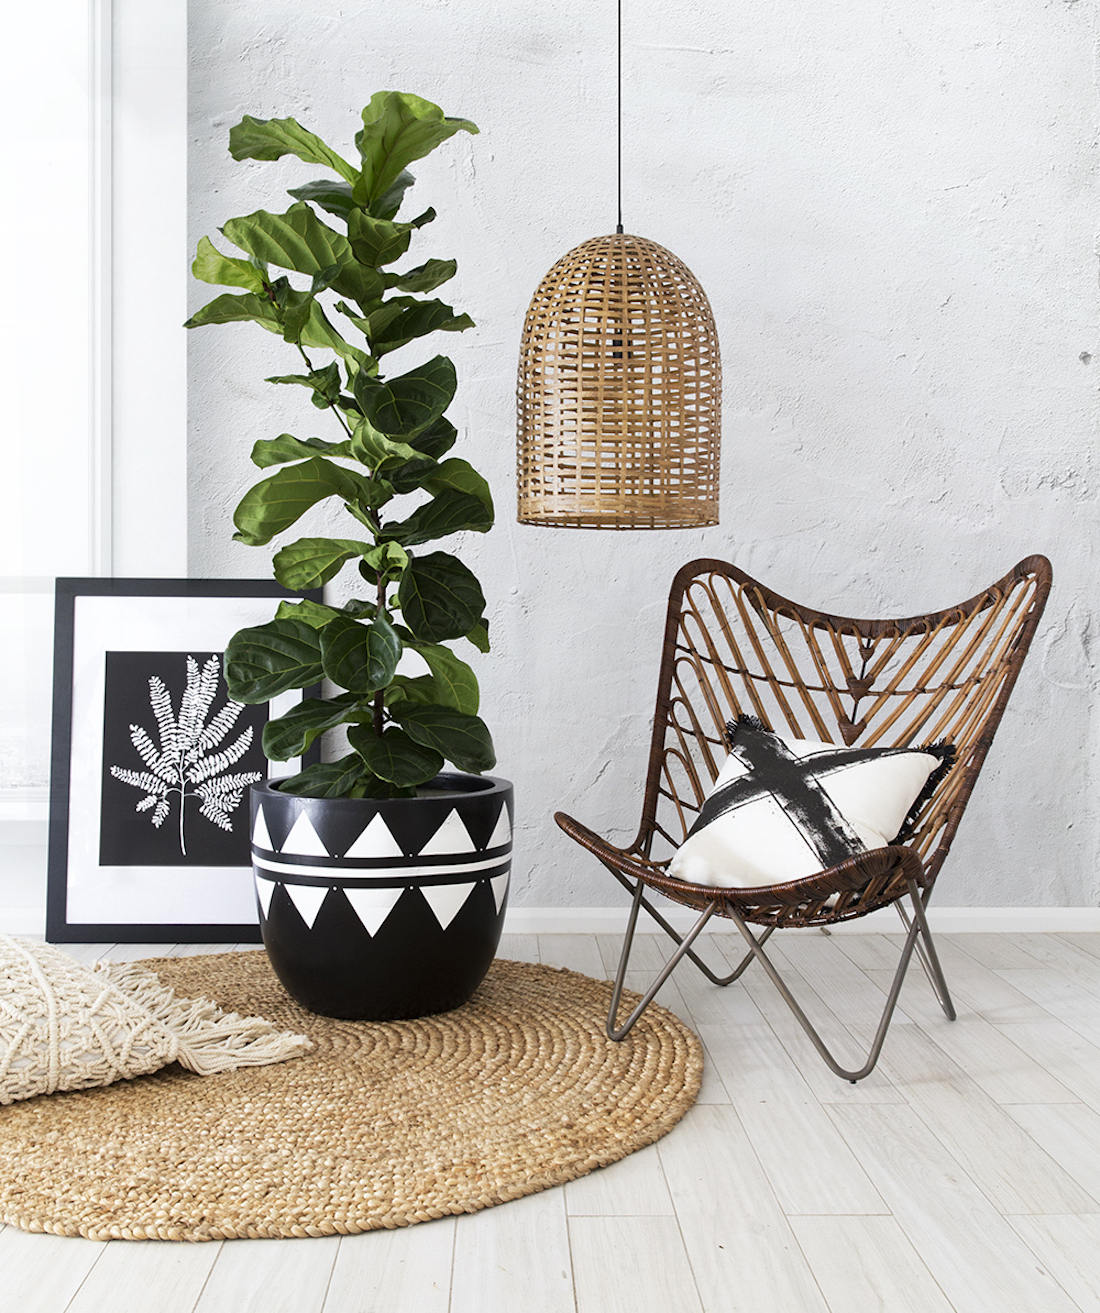 A large pot plant sits in a room surrounded by beachy decor.